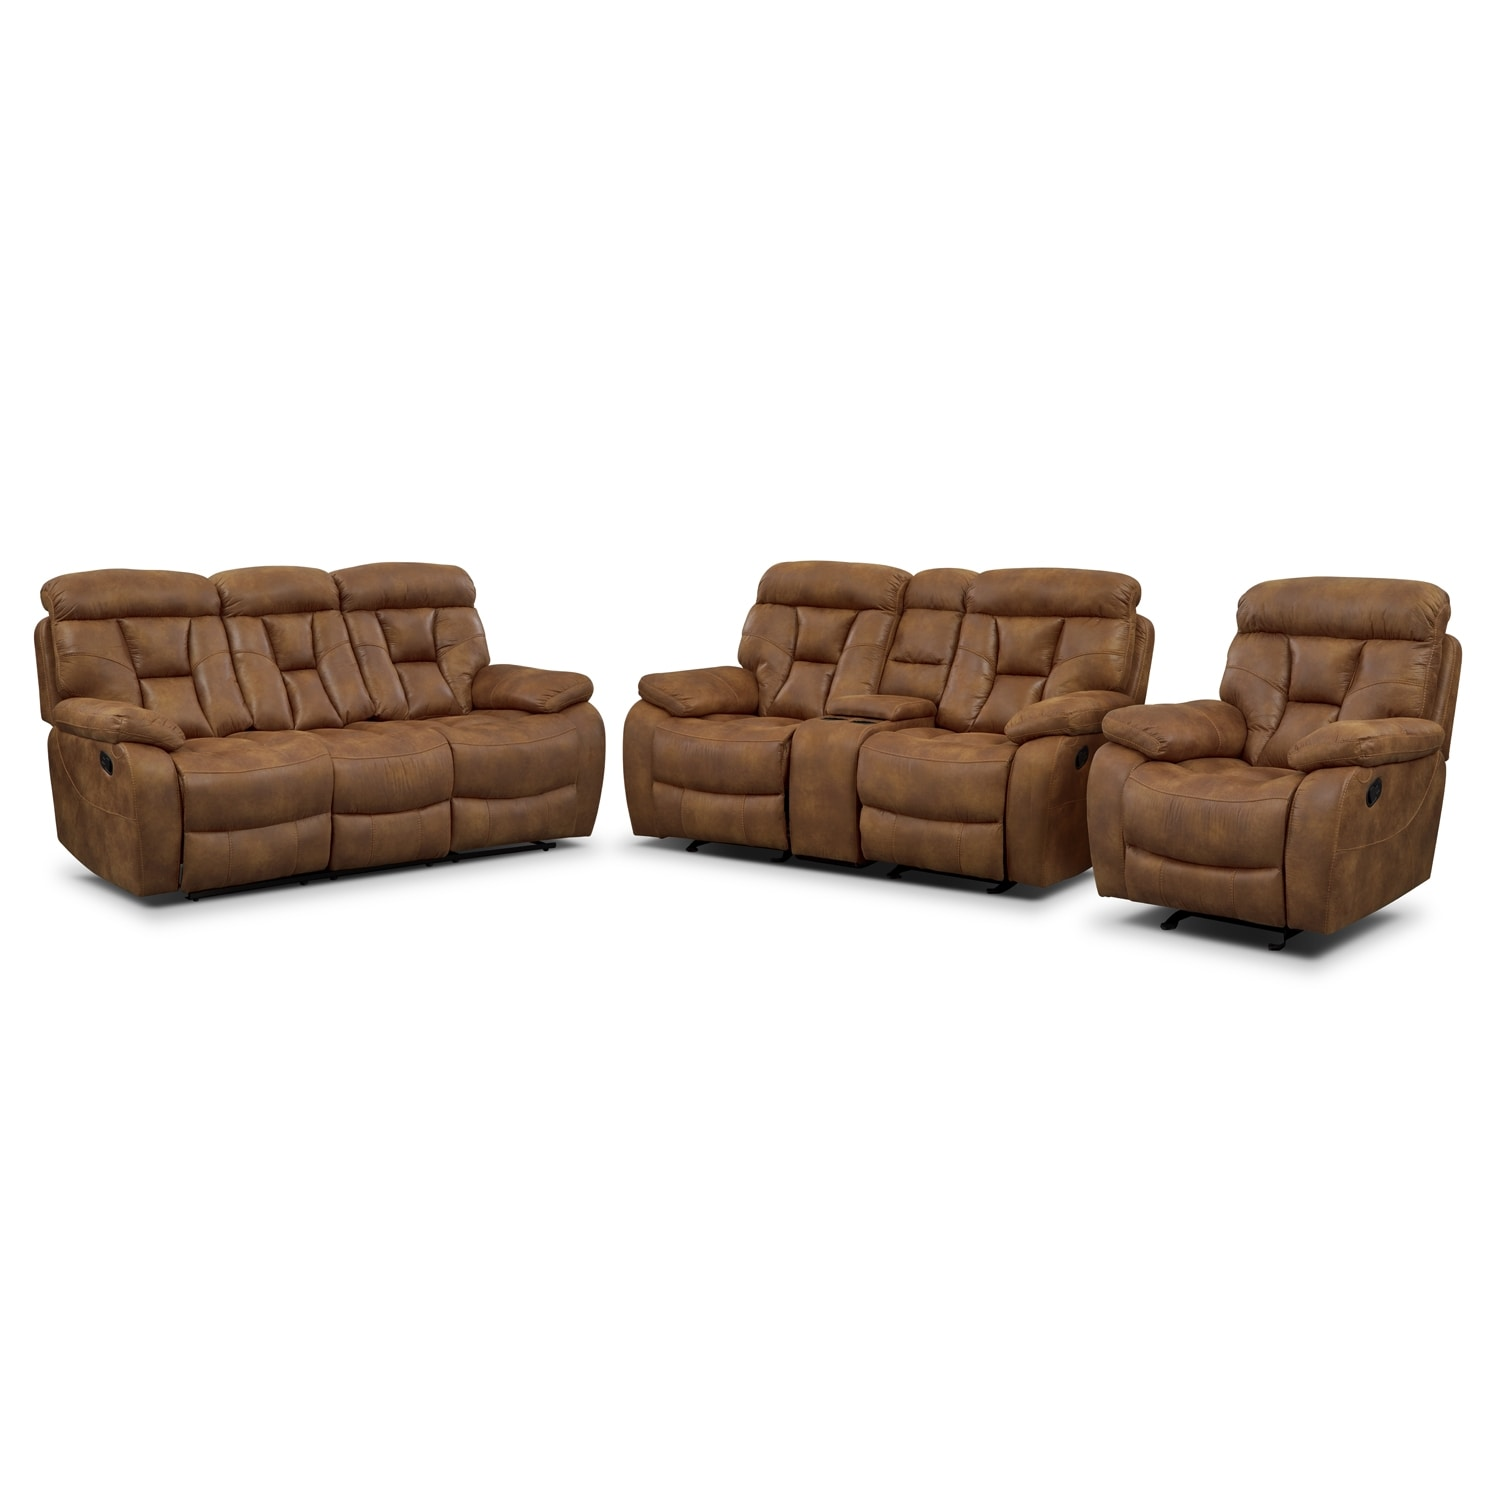 Dakota Reclining Sofa Gliding Loveseat And Glider Recliner Set Almond American Signature